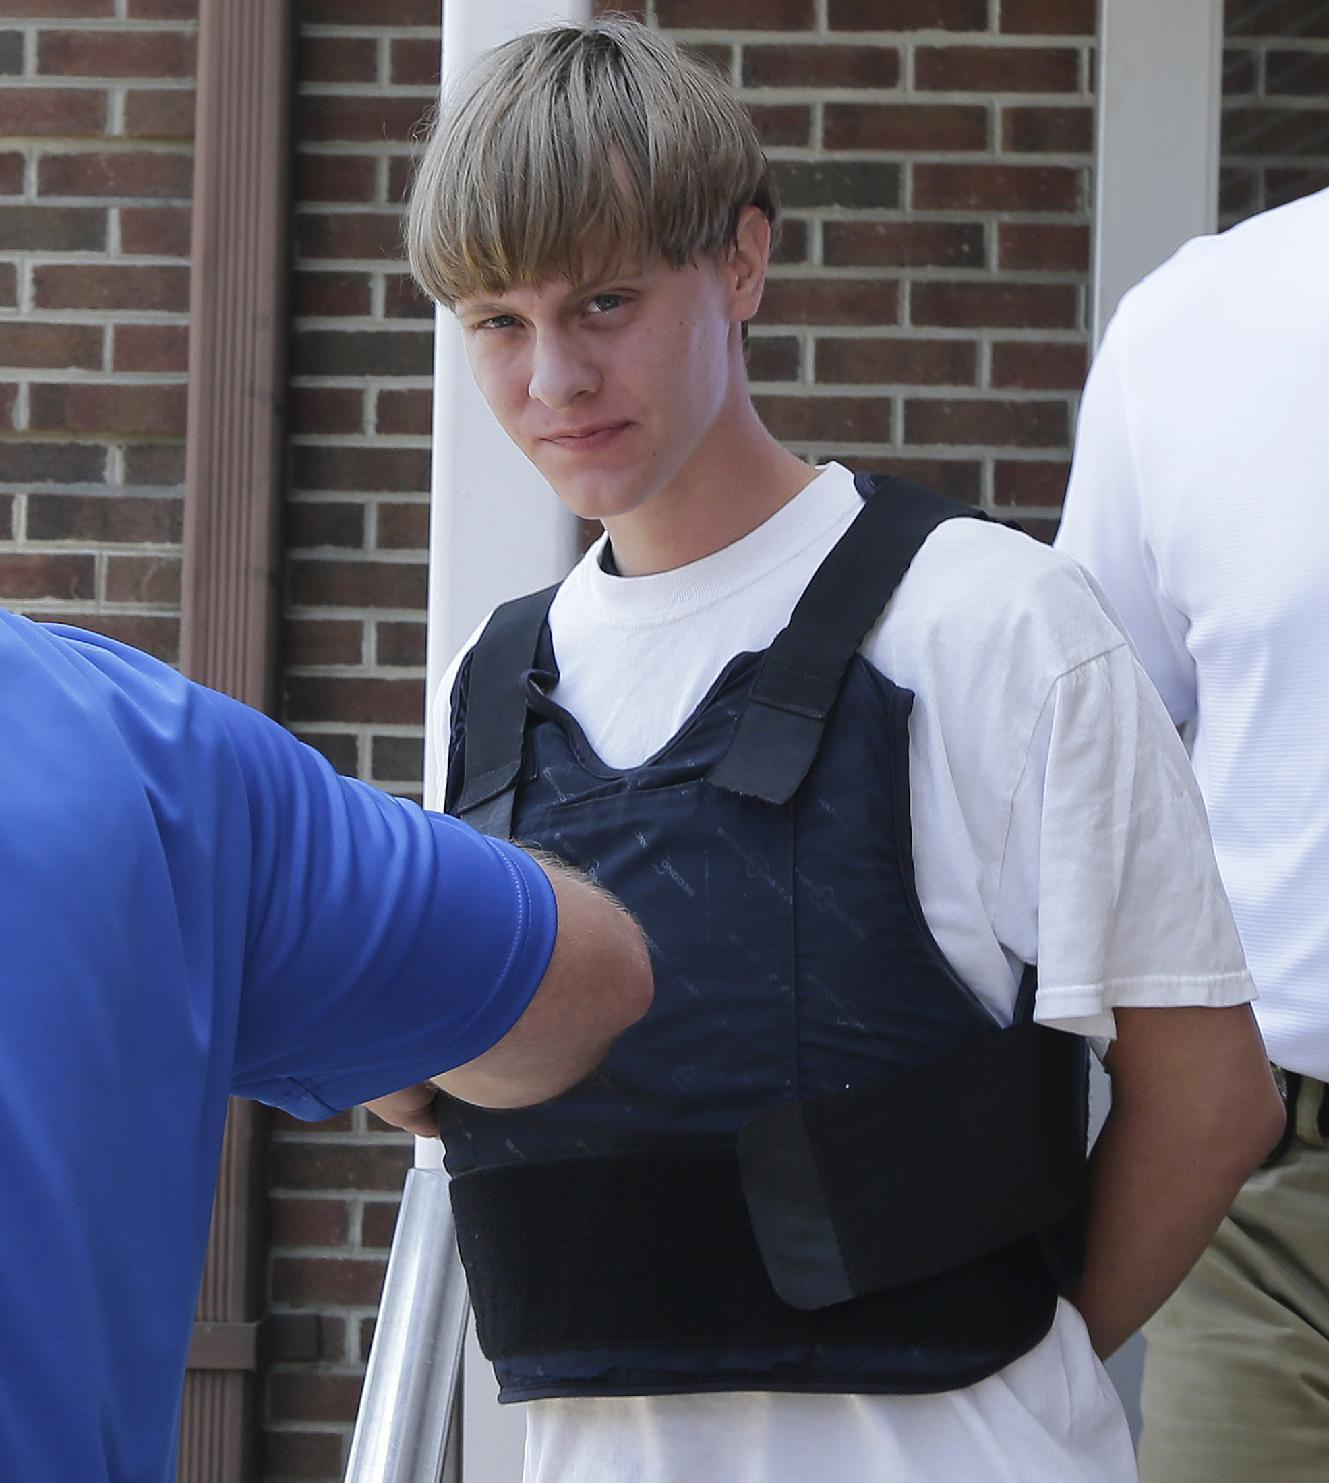 Defense focuses on penalty, not guilt in church shooting